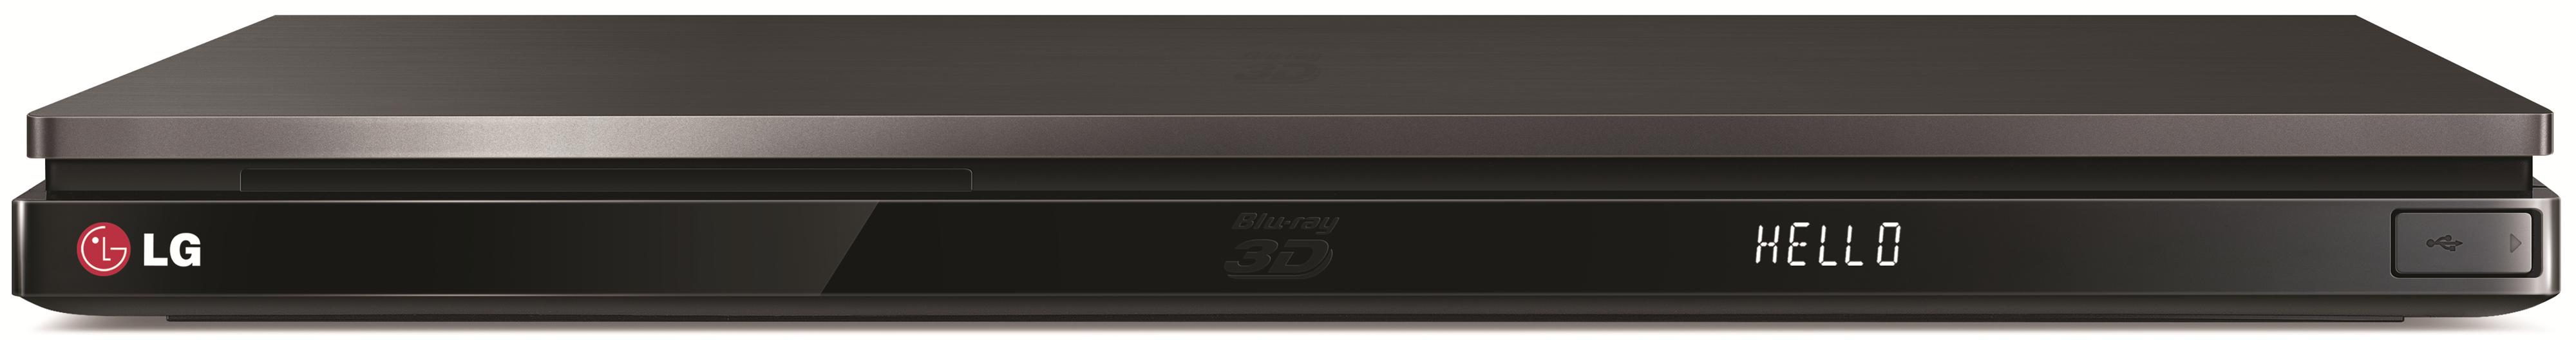 LG Electronics DVD and Blu-Ray Players 3D Blu-Ray Player - Item Number: BP730